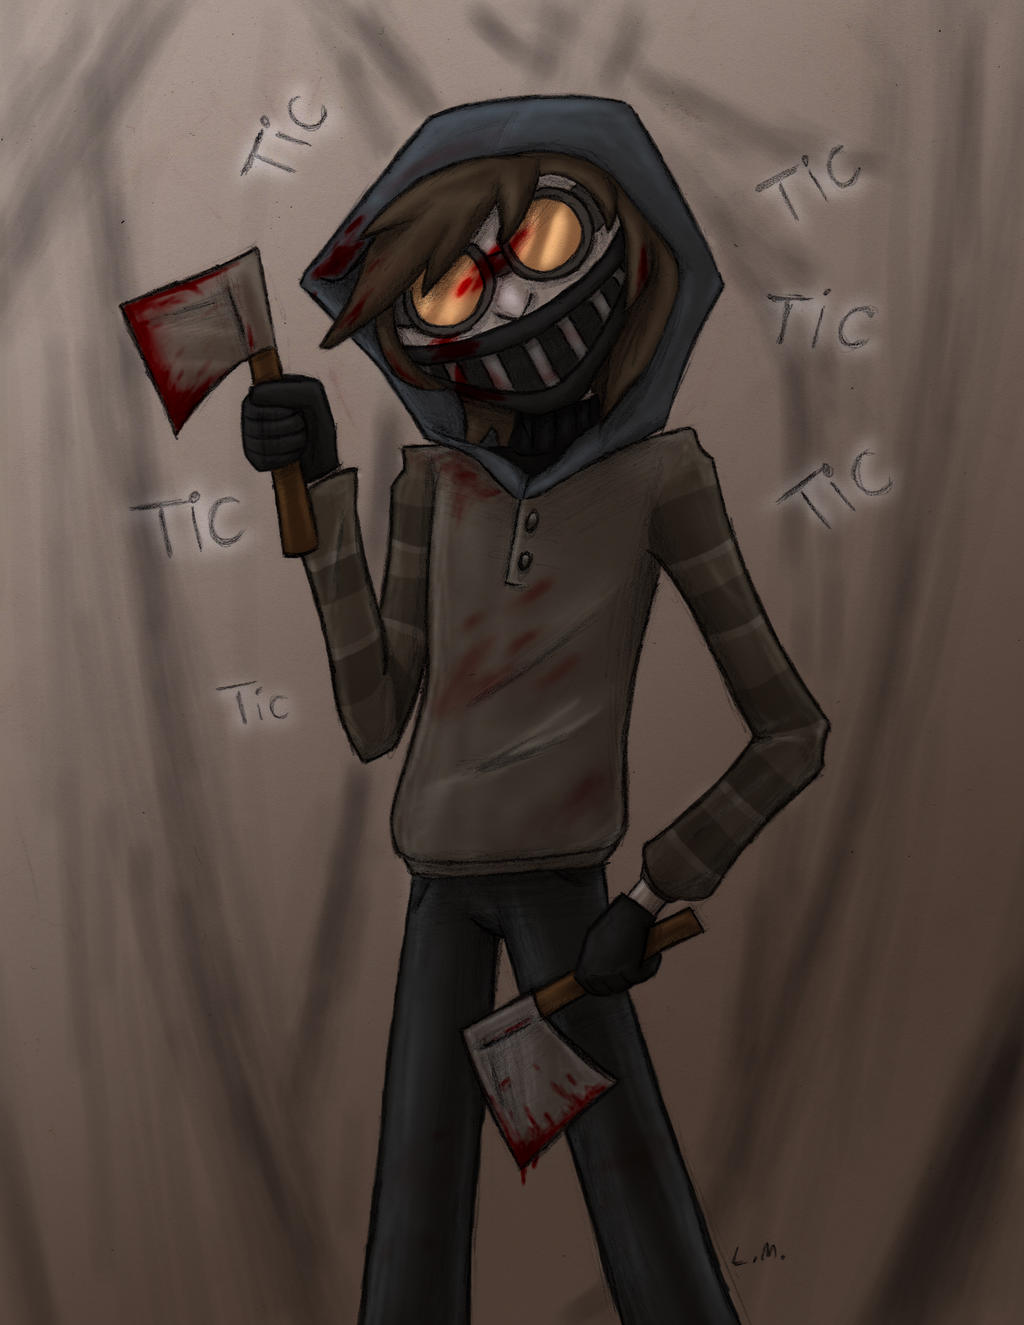 Ticci-Toby by AwesomeWaffle11 on DeviantArt